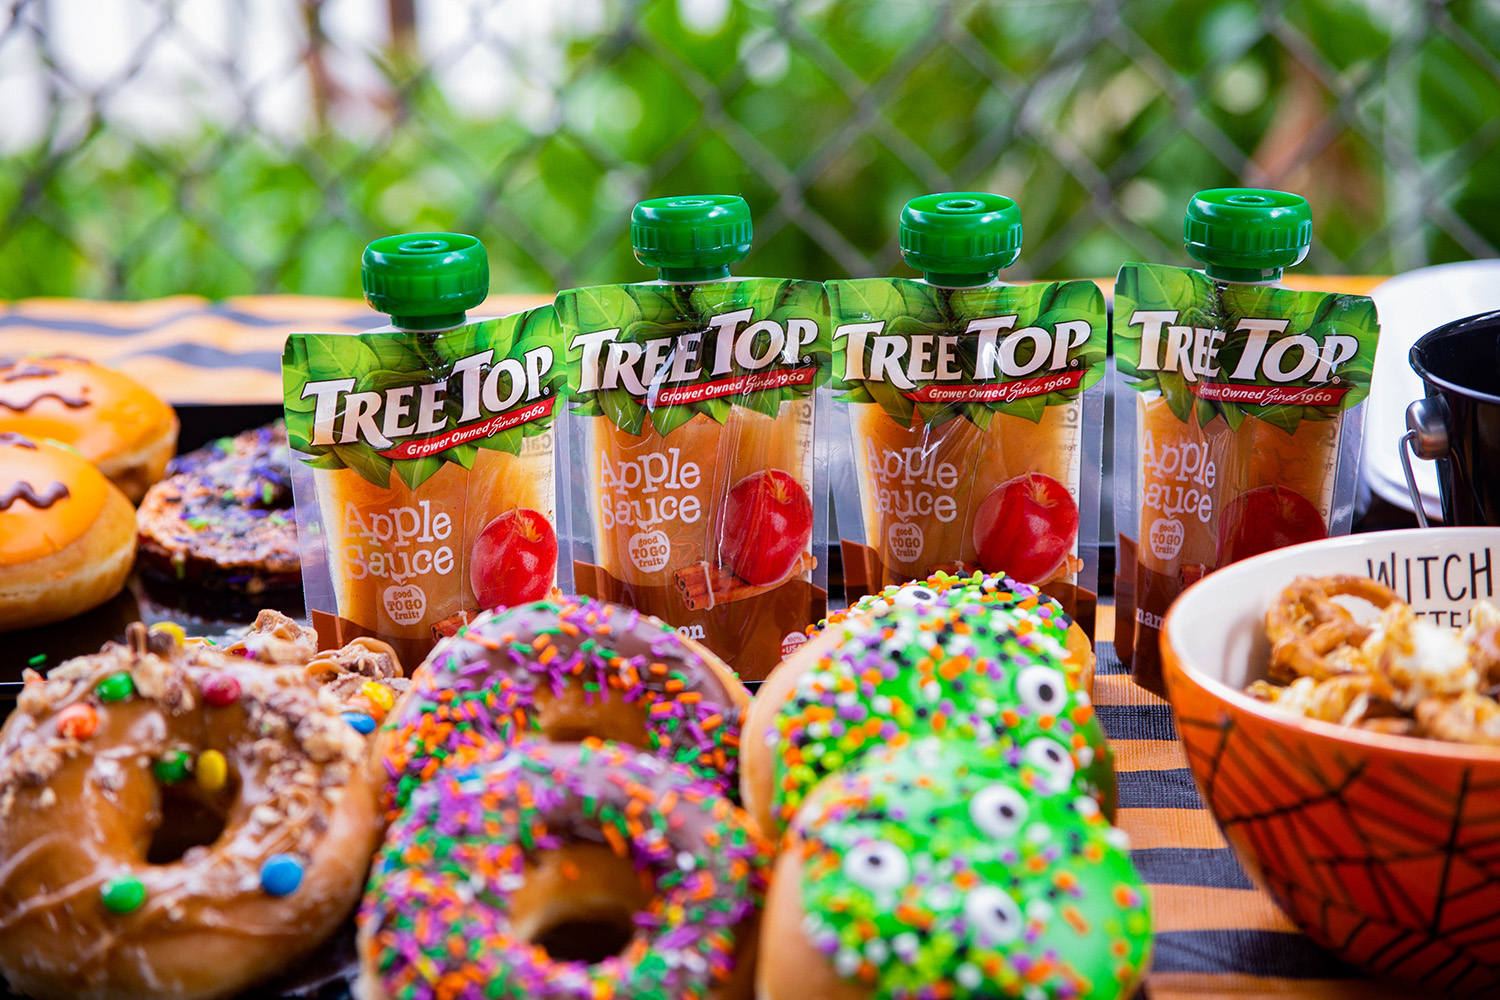 Looking for a healthy snack to bring on play dates? These Tree Top pouches are the BEST!